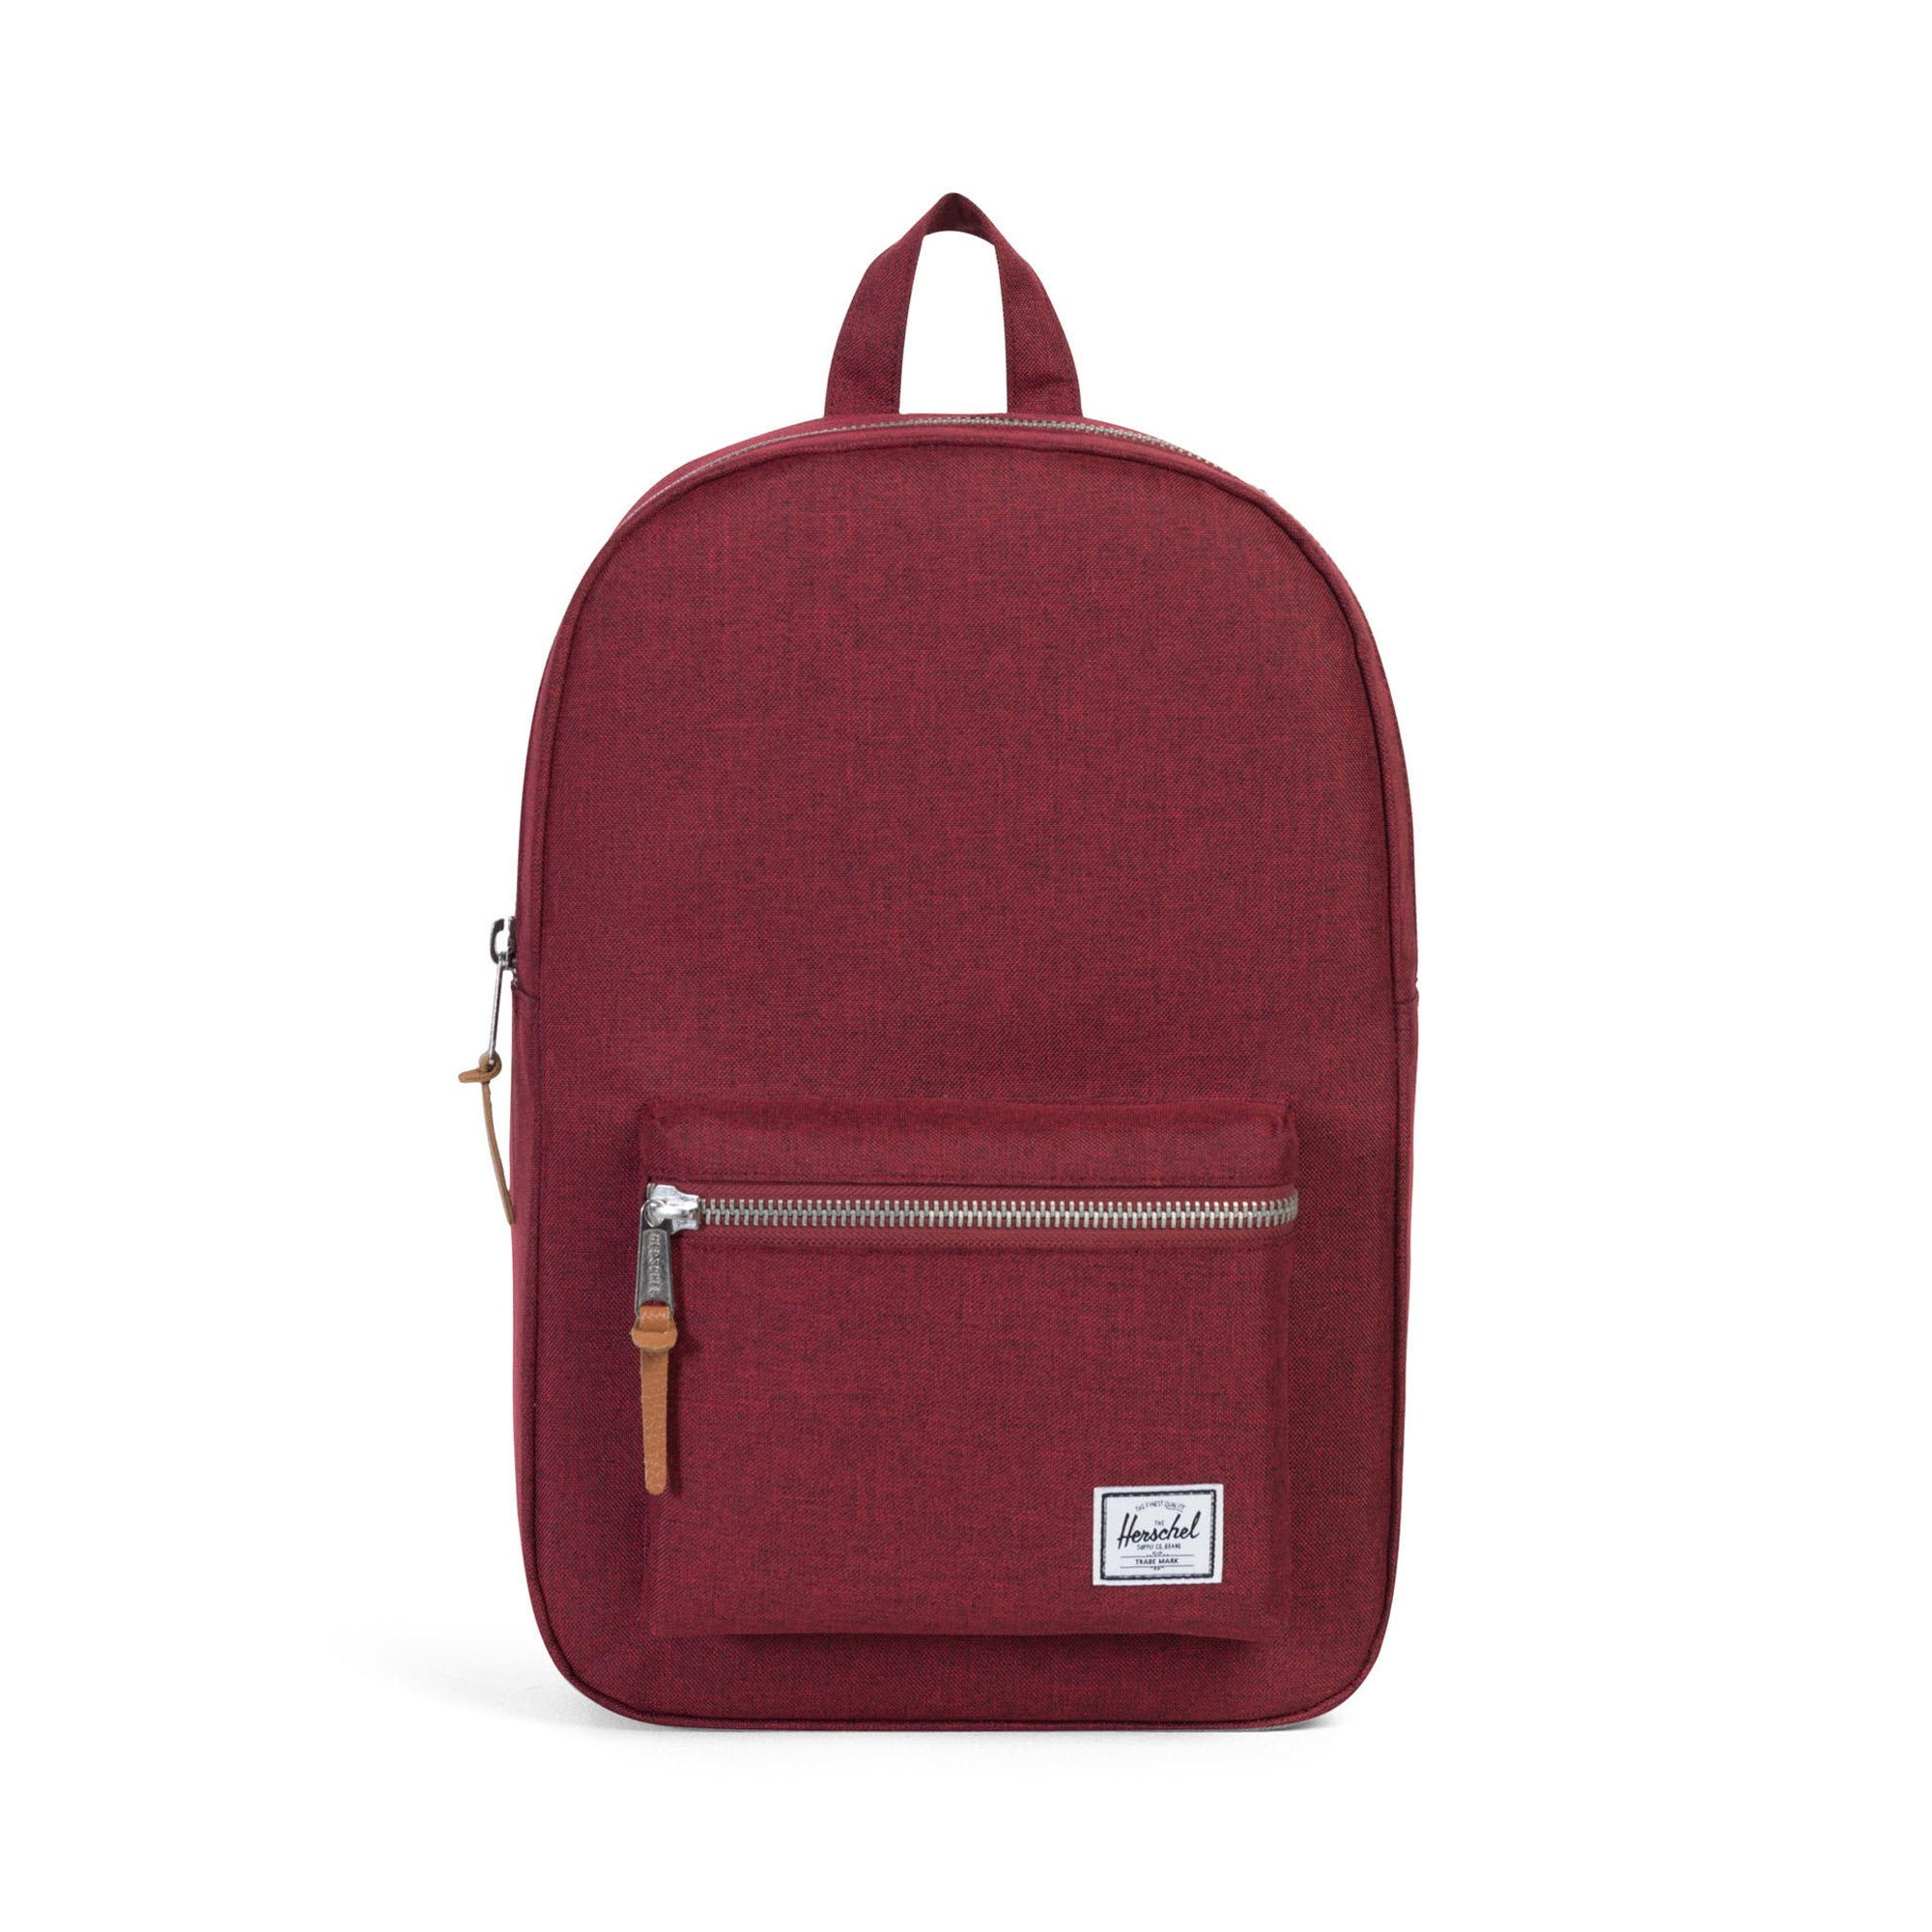 herschel backpack cheap   OFF63% The Largest Catalog Discounts 8c8a97bfa2ddb